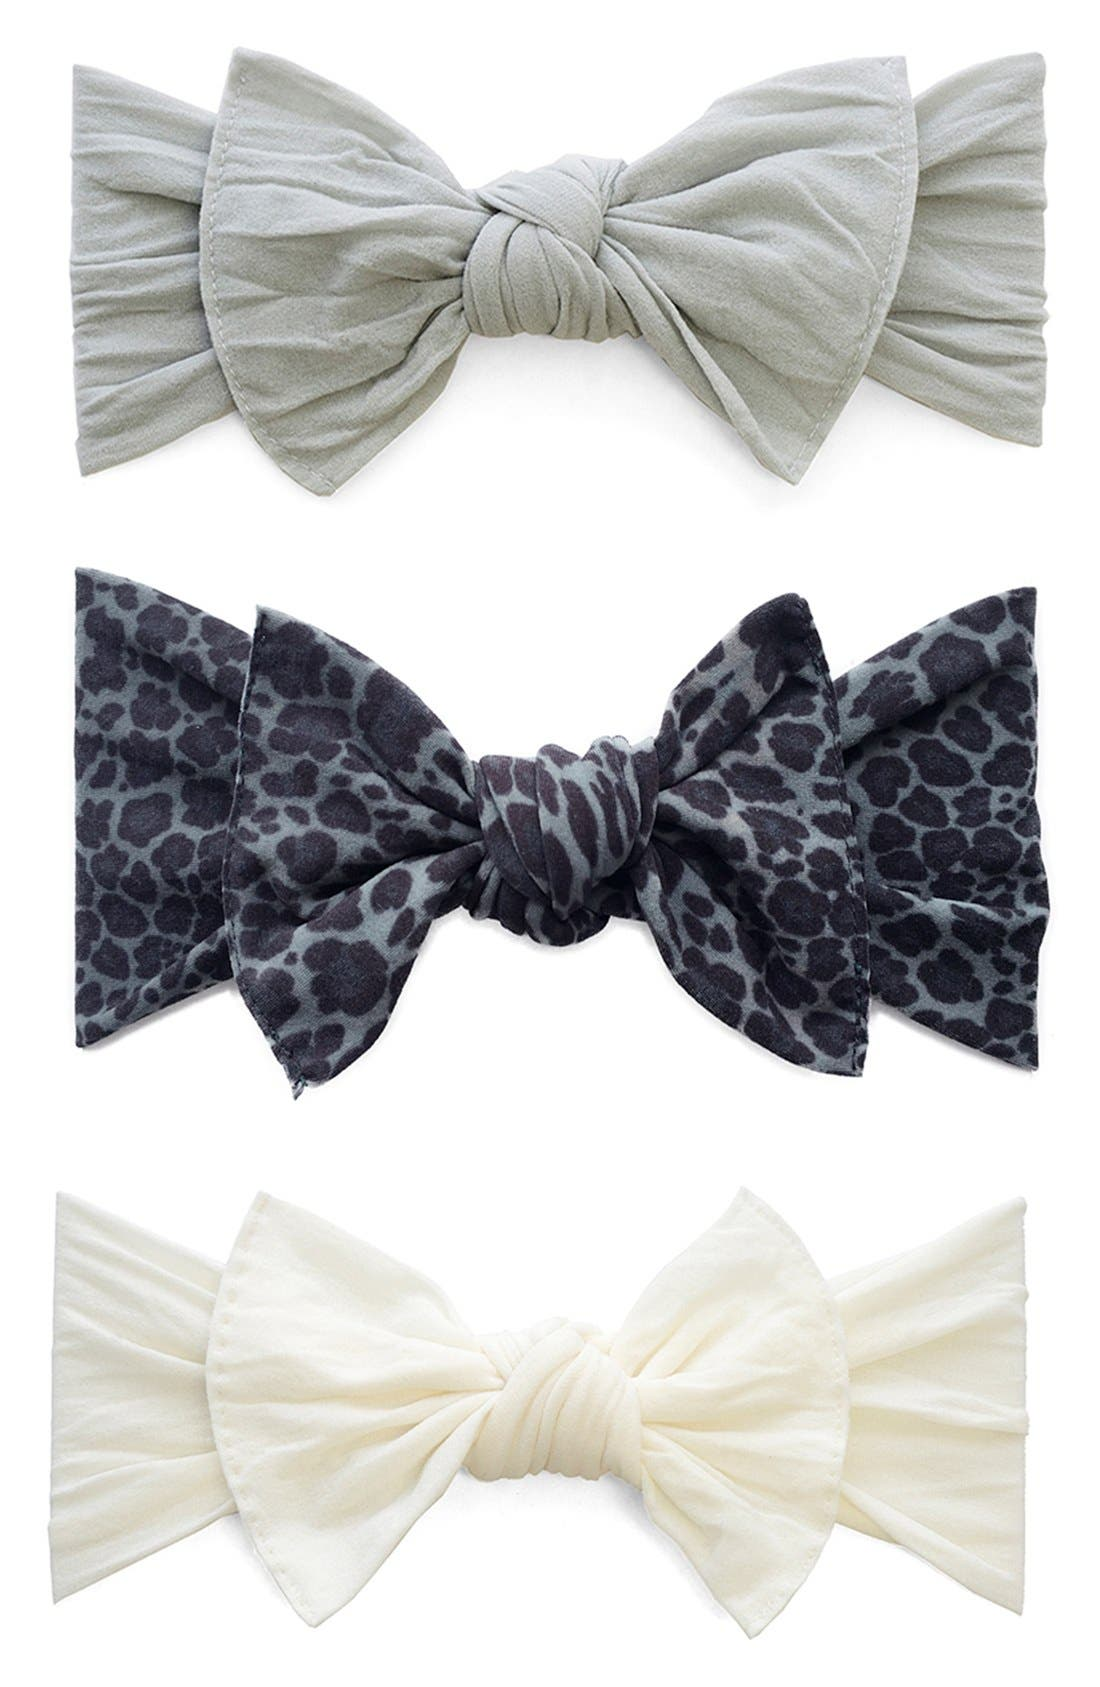 Alternate Image 1 Selected - Baby Bling Bow Stretch Headband (3-Pack) (Baby Girls)